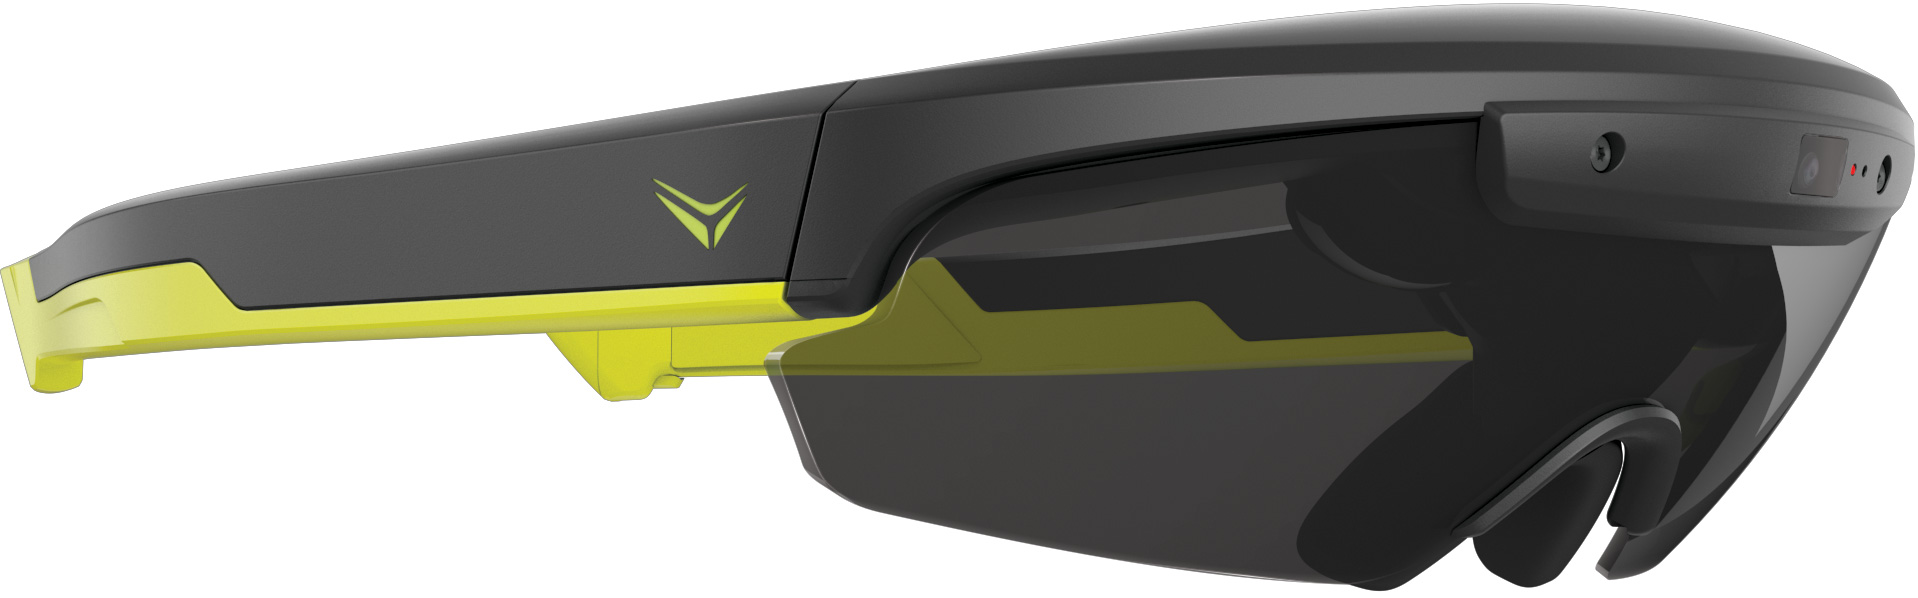 Everysight presenta gli occhiali smart Raptor